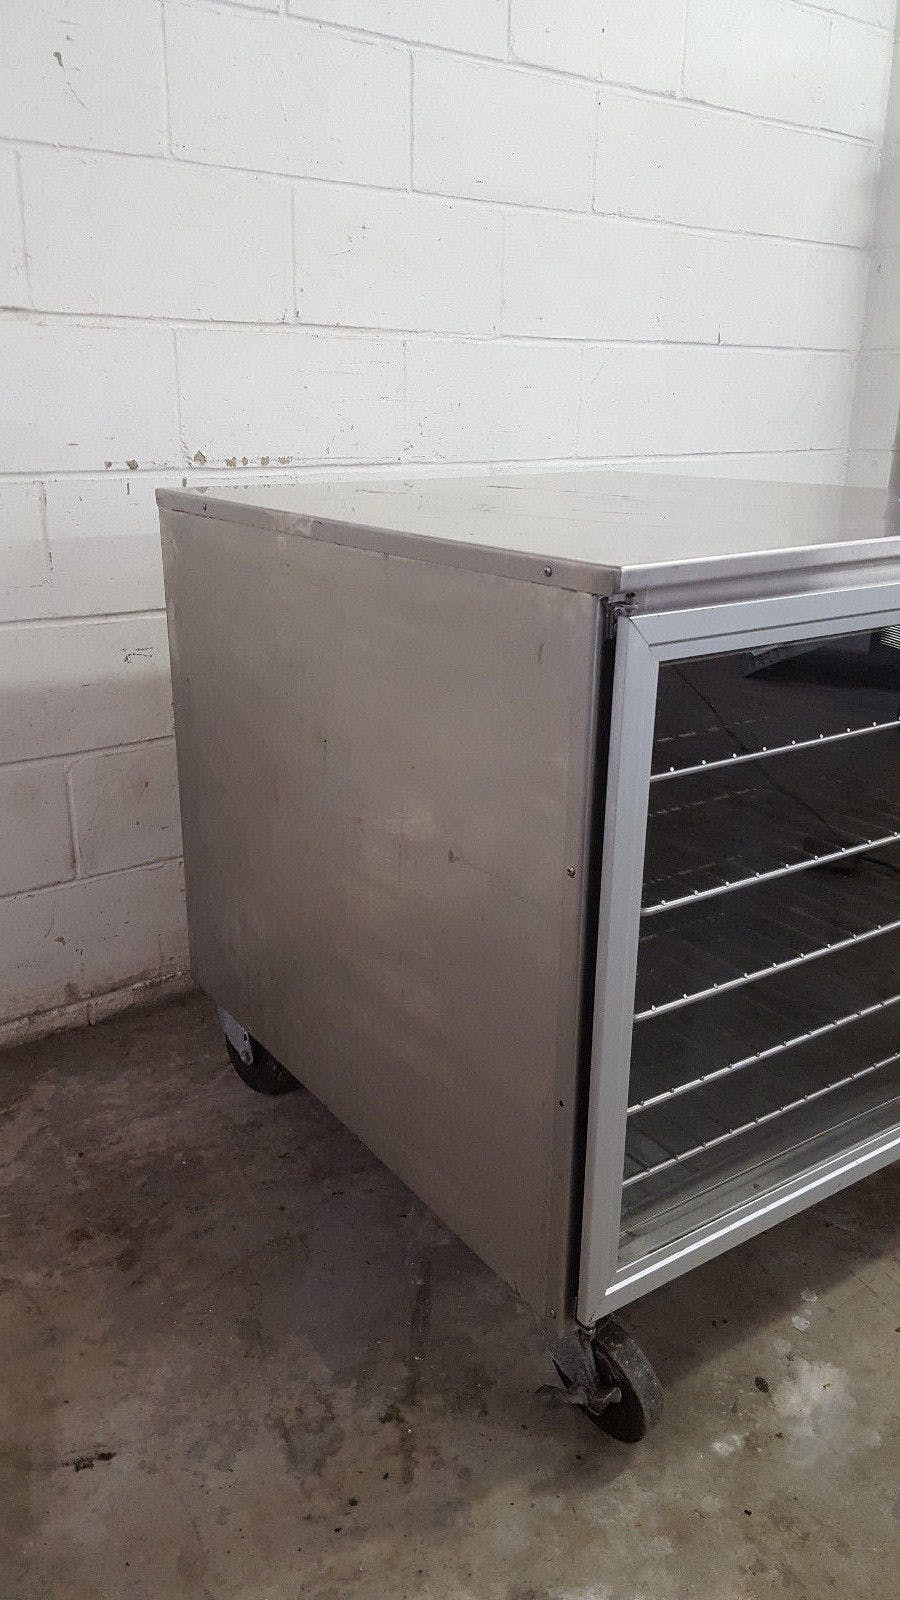 Stanley Knight Food Holding Oven 120v Tested 215 Degrees - sold by Jak's Restaurant Supply